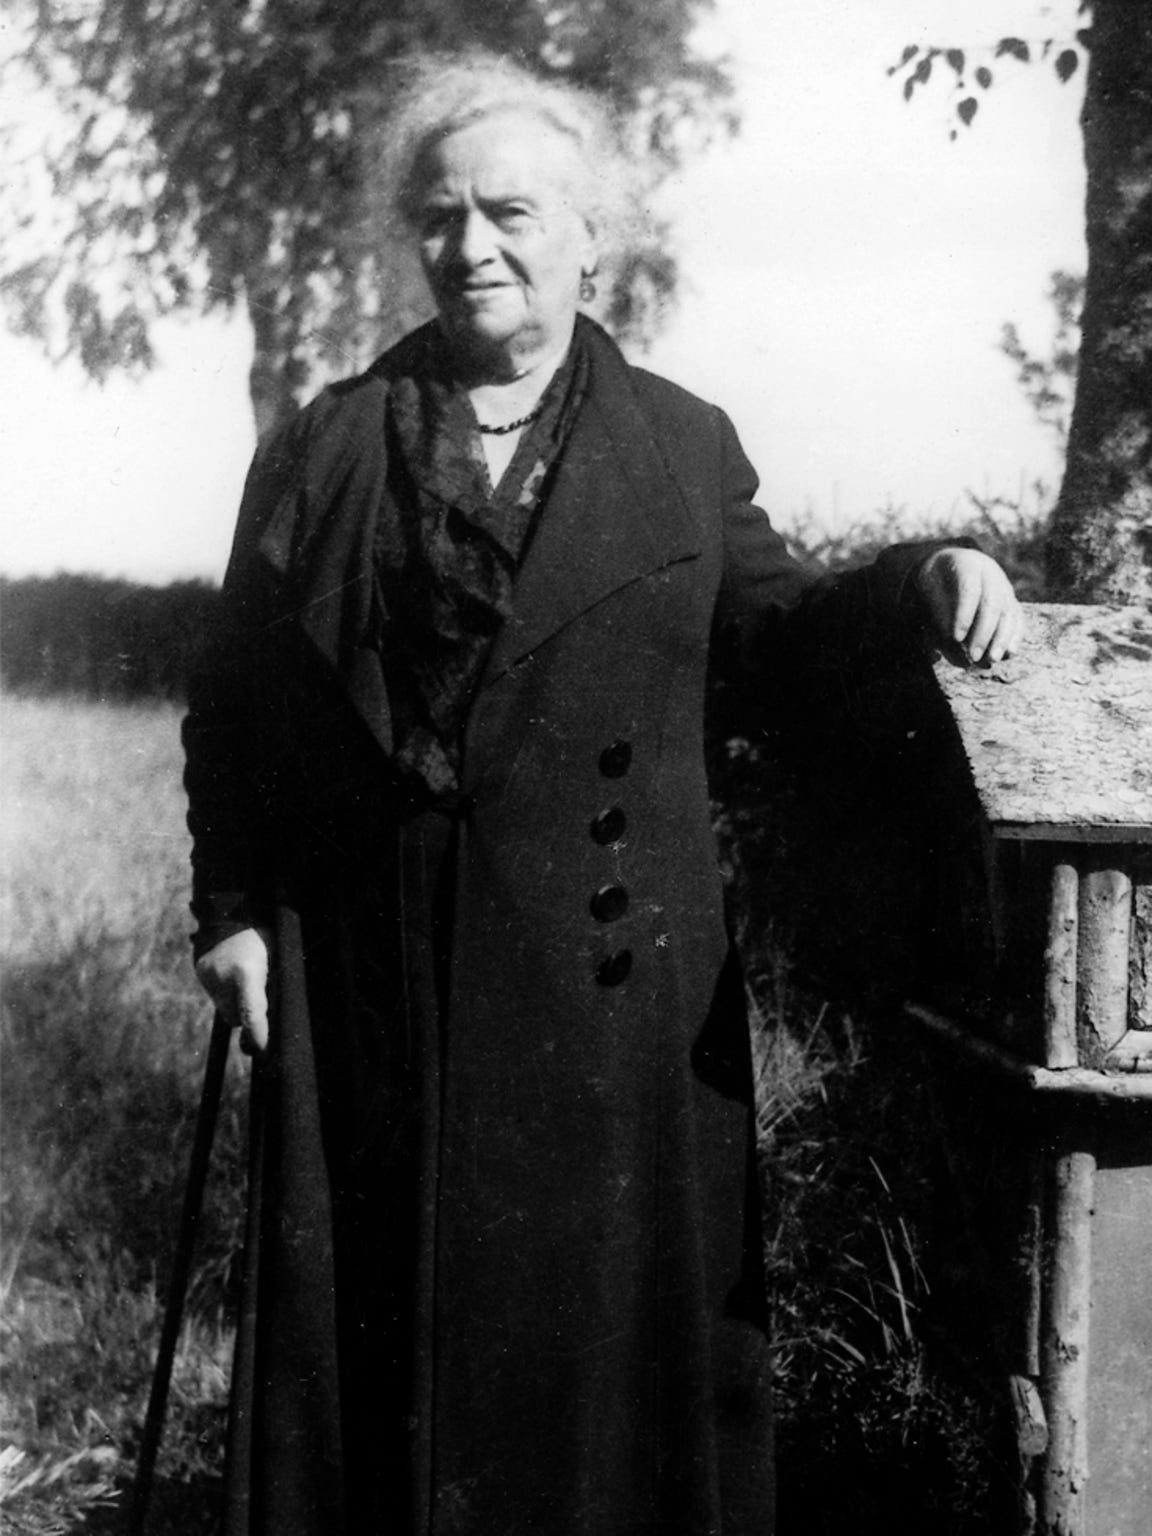 Ida Weisskopf toward the end of her life. She died